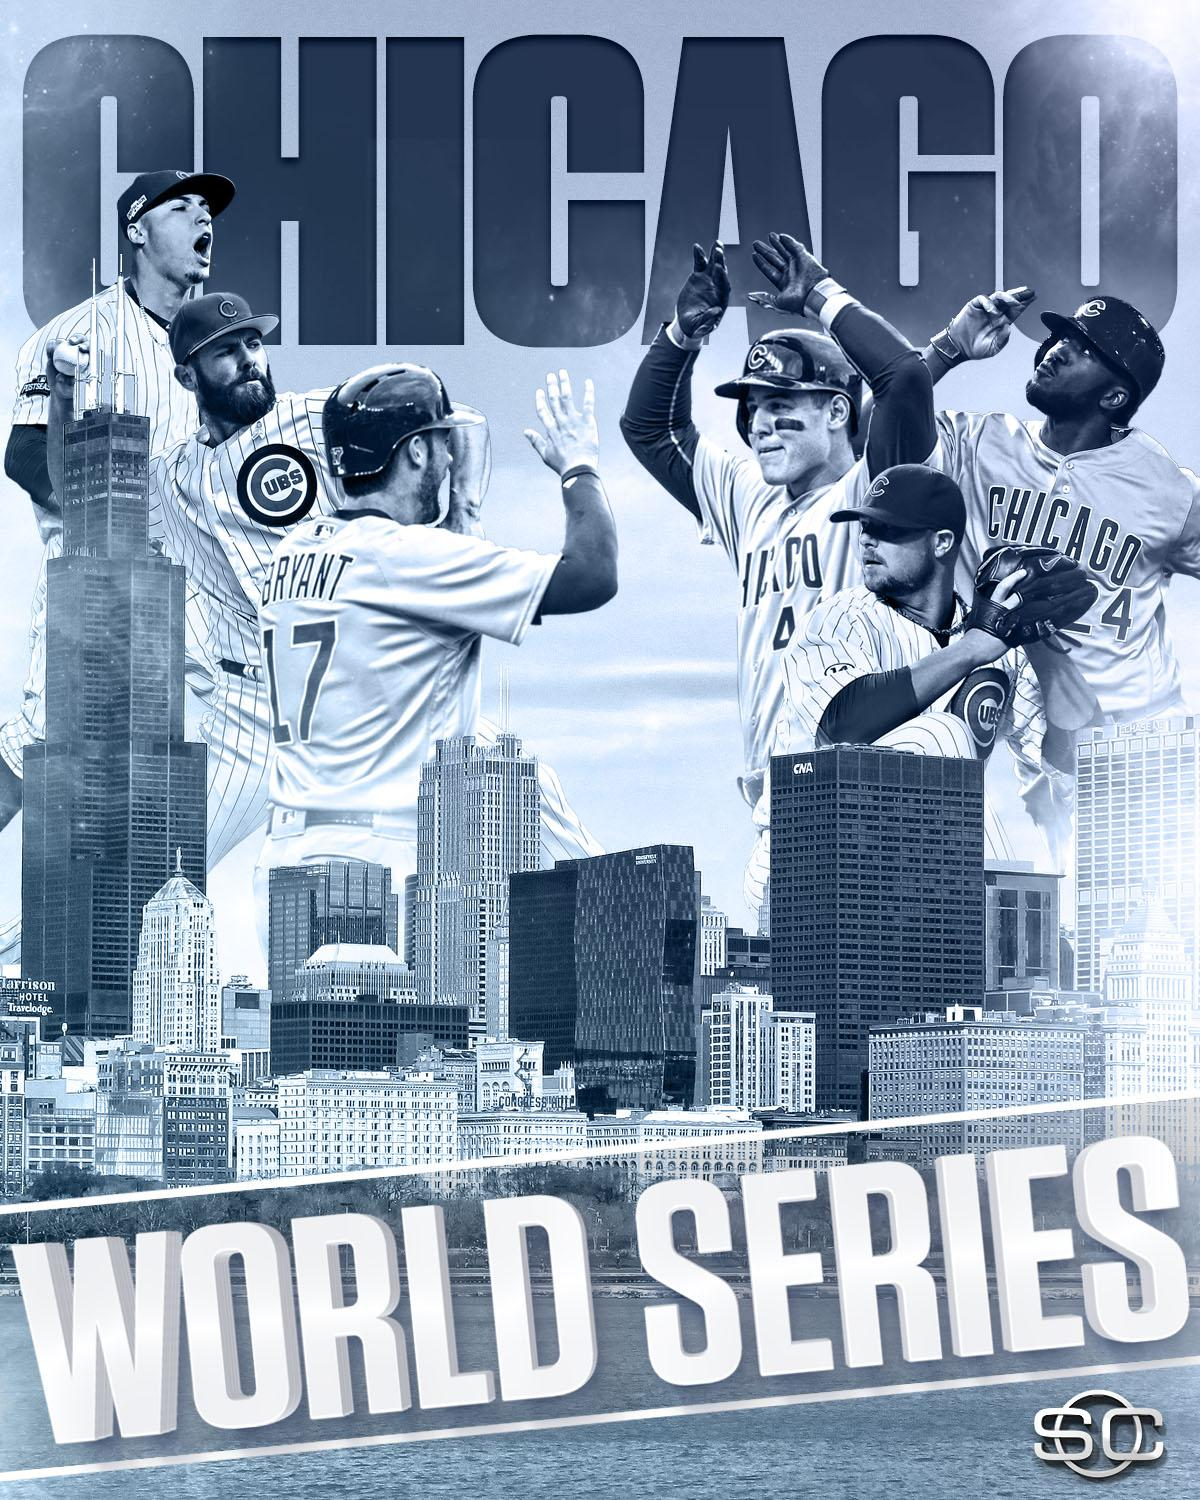 CHICAGO IS WORLD SERIES BOUND!  Cubs shut out Dodgers in Game 6 & advance to 1st World Series since 1945. #FlyTheW https://t.co/eQL7sWWbBD